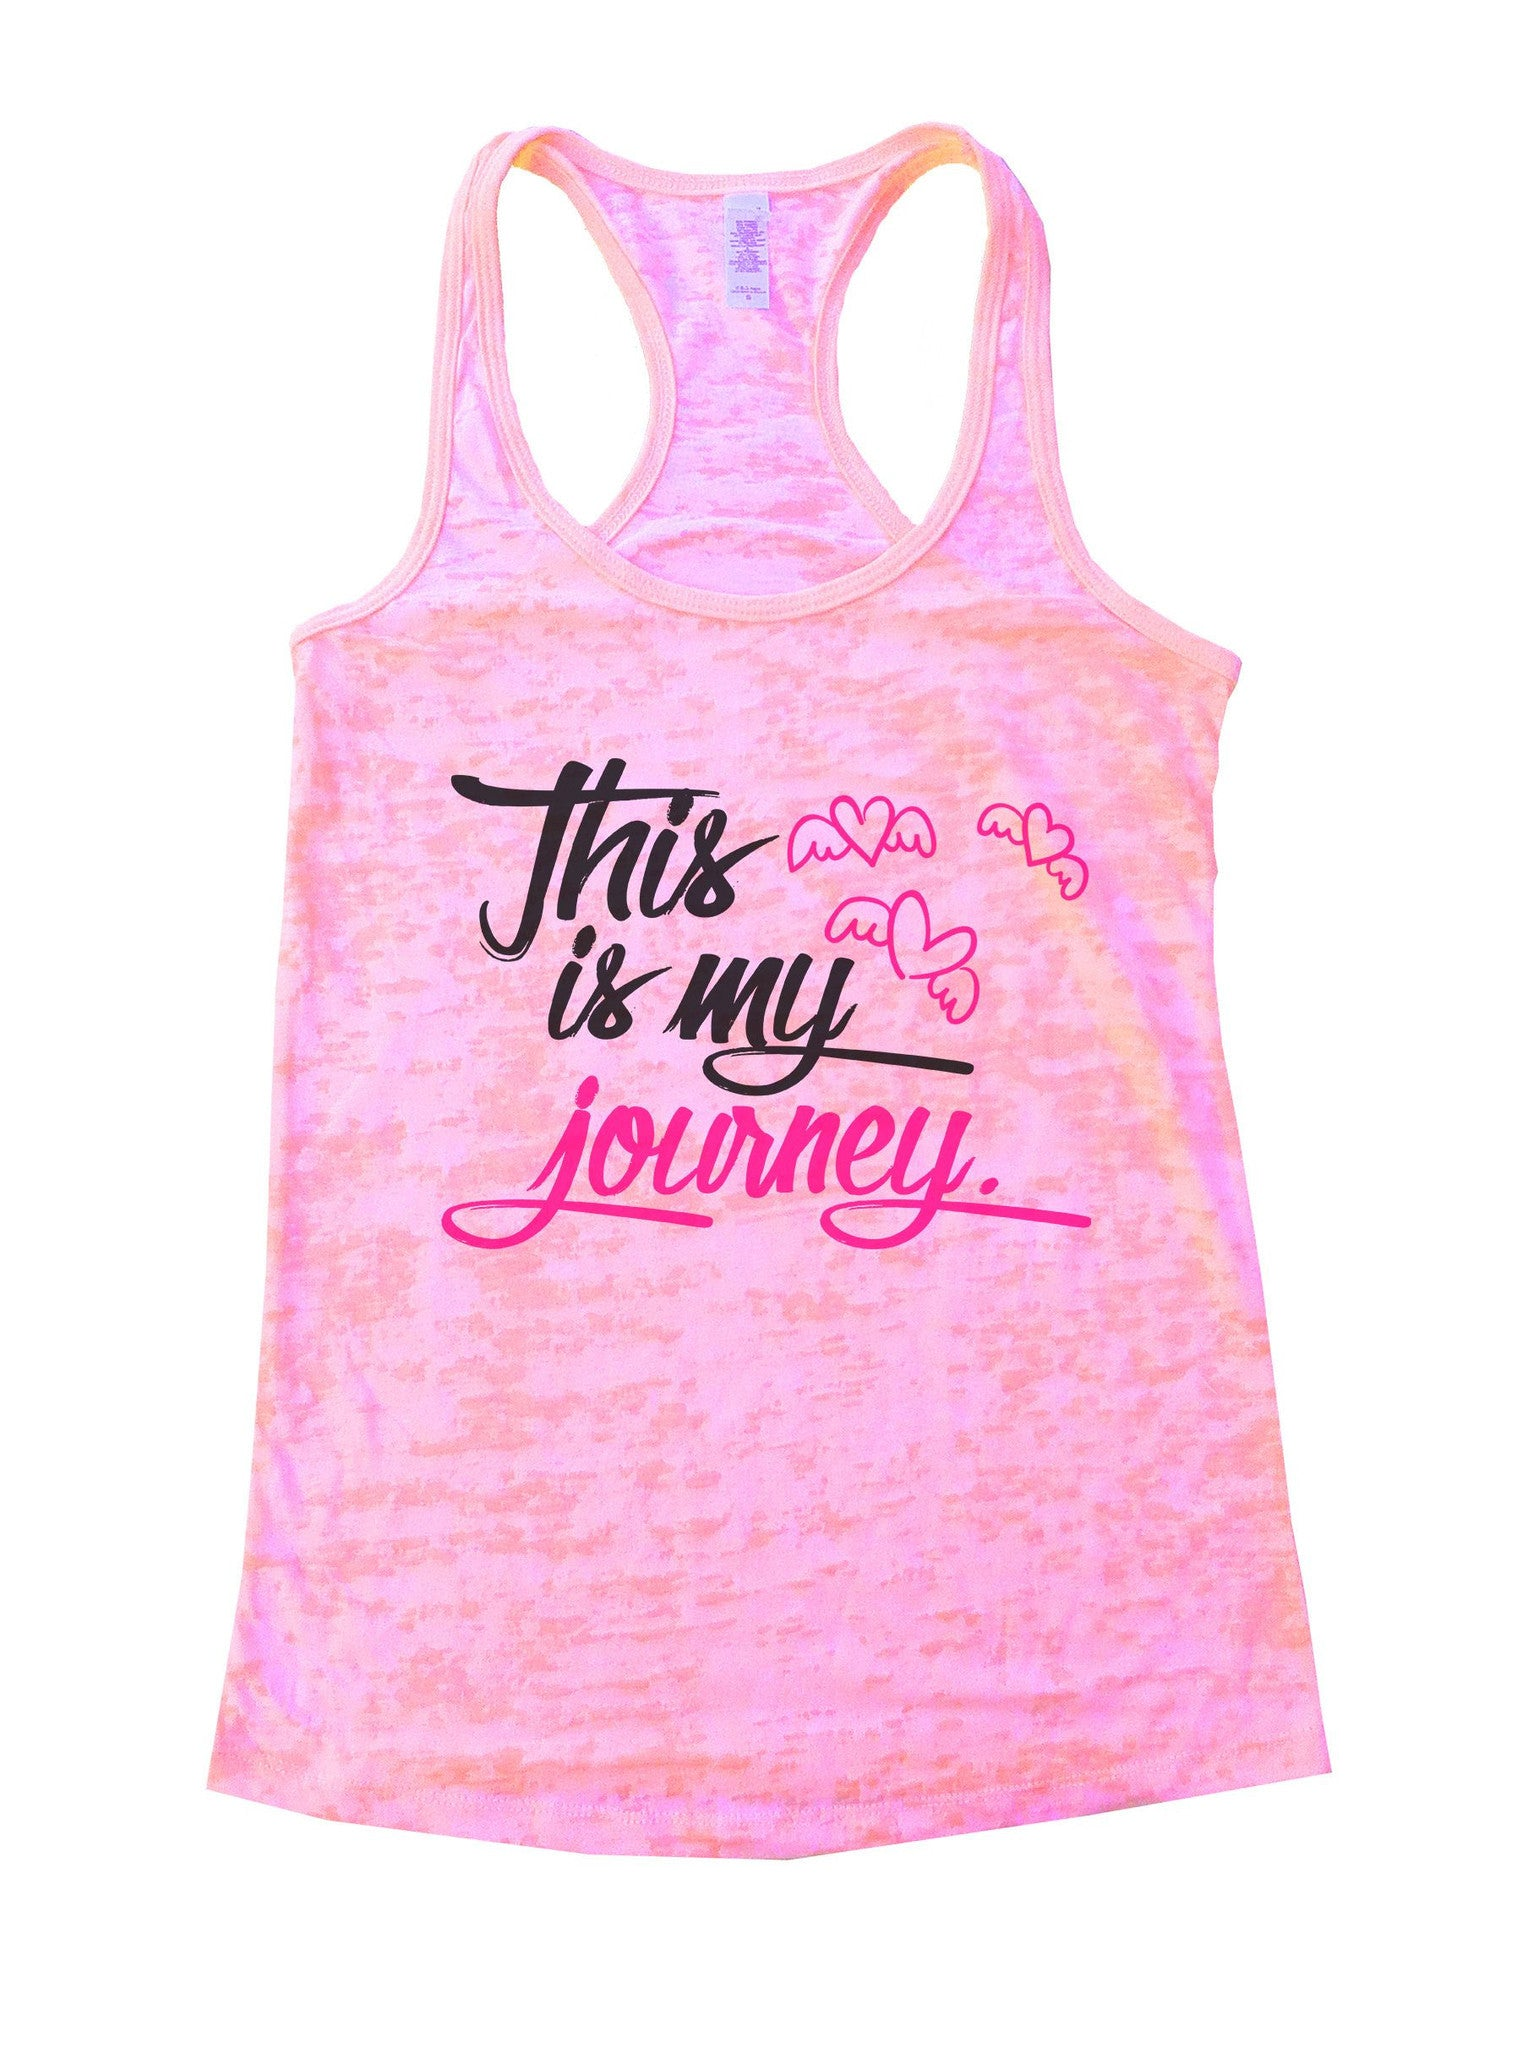 This Is My Journey Burnout Tank Top By BurnoutTankTops.com - 1042 - Funny Shirts Tank Tops Burnouts and Triblends  - 2